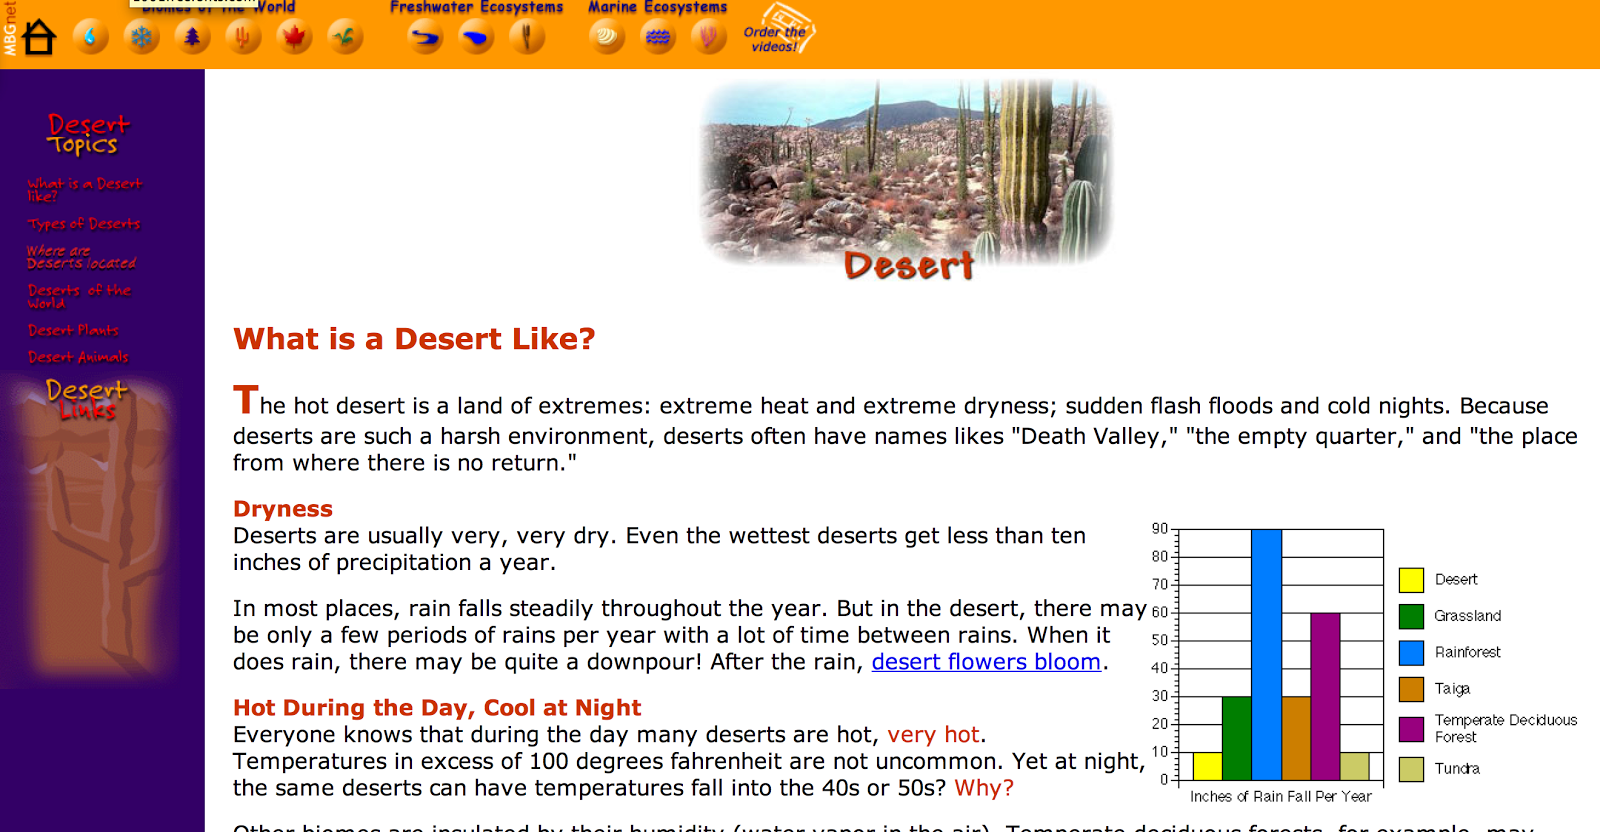 worksheet Biome Webquest Worksheet ecosystemhabitatbiome webquest freebie the techie lets say you wanted to learn more about desert ecosystem click on picture